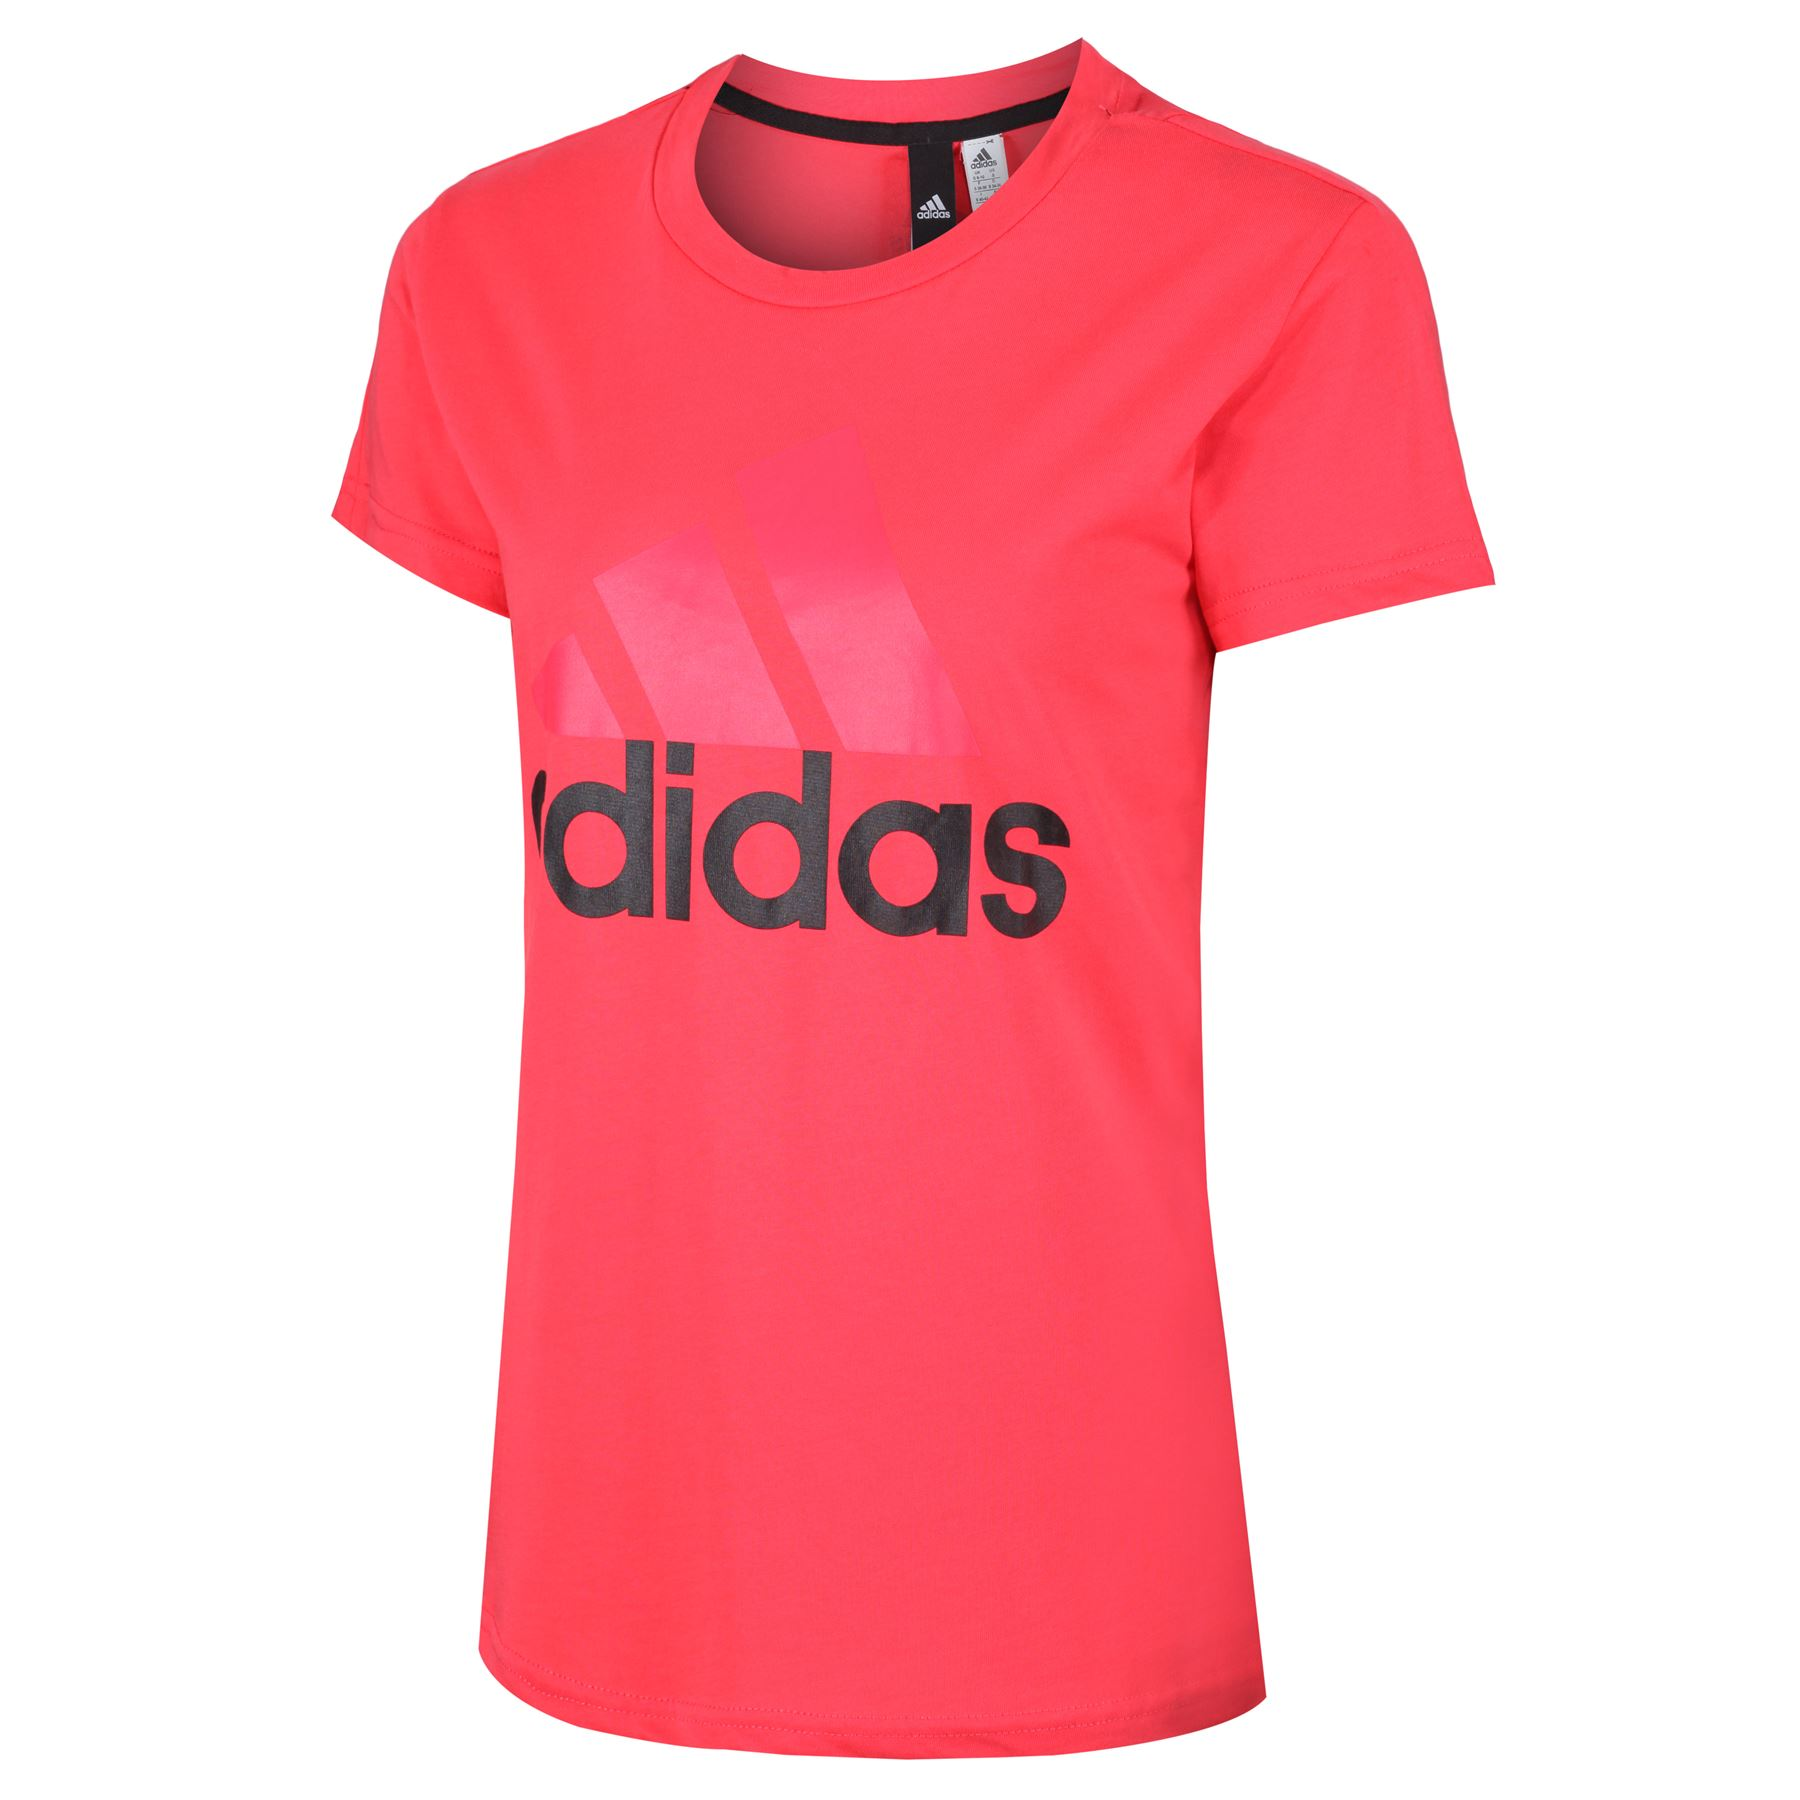 adidas-WOMEN-039-S-ESSENTIALS-LINEAR-T-SHIRT-GYM-BLACK-PINK-WHITE-NAVY-GIRLS-LADIES thumbnail 19